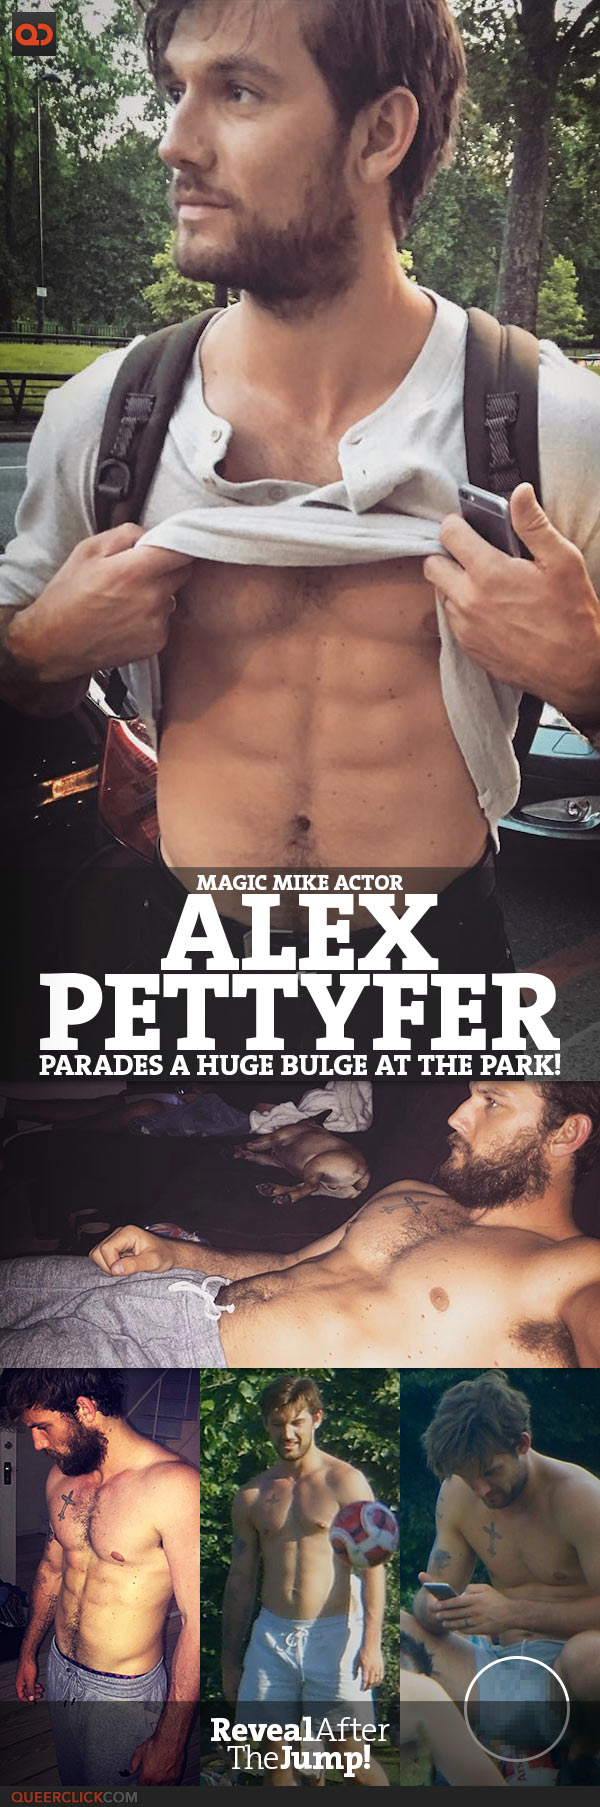 Alex Pettyfer, Magic Mike Actor, Parades A Huge Bulge At The Park!